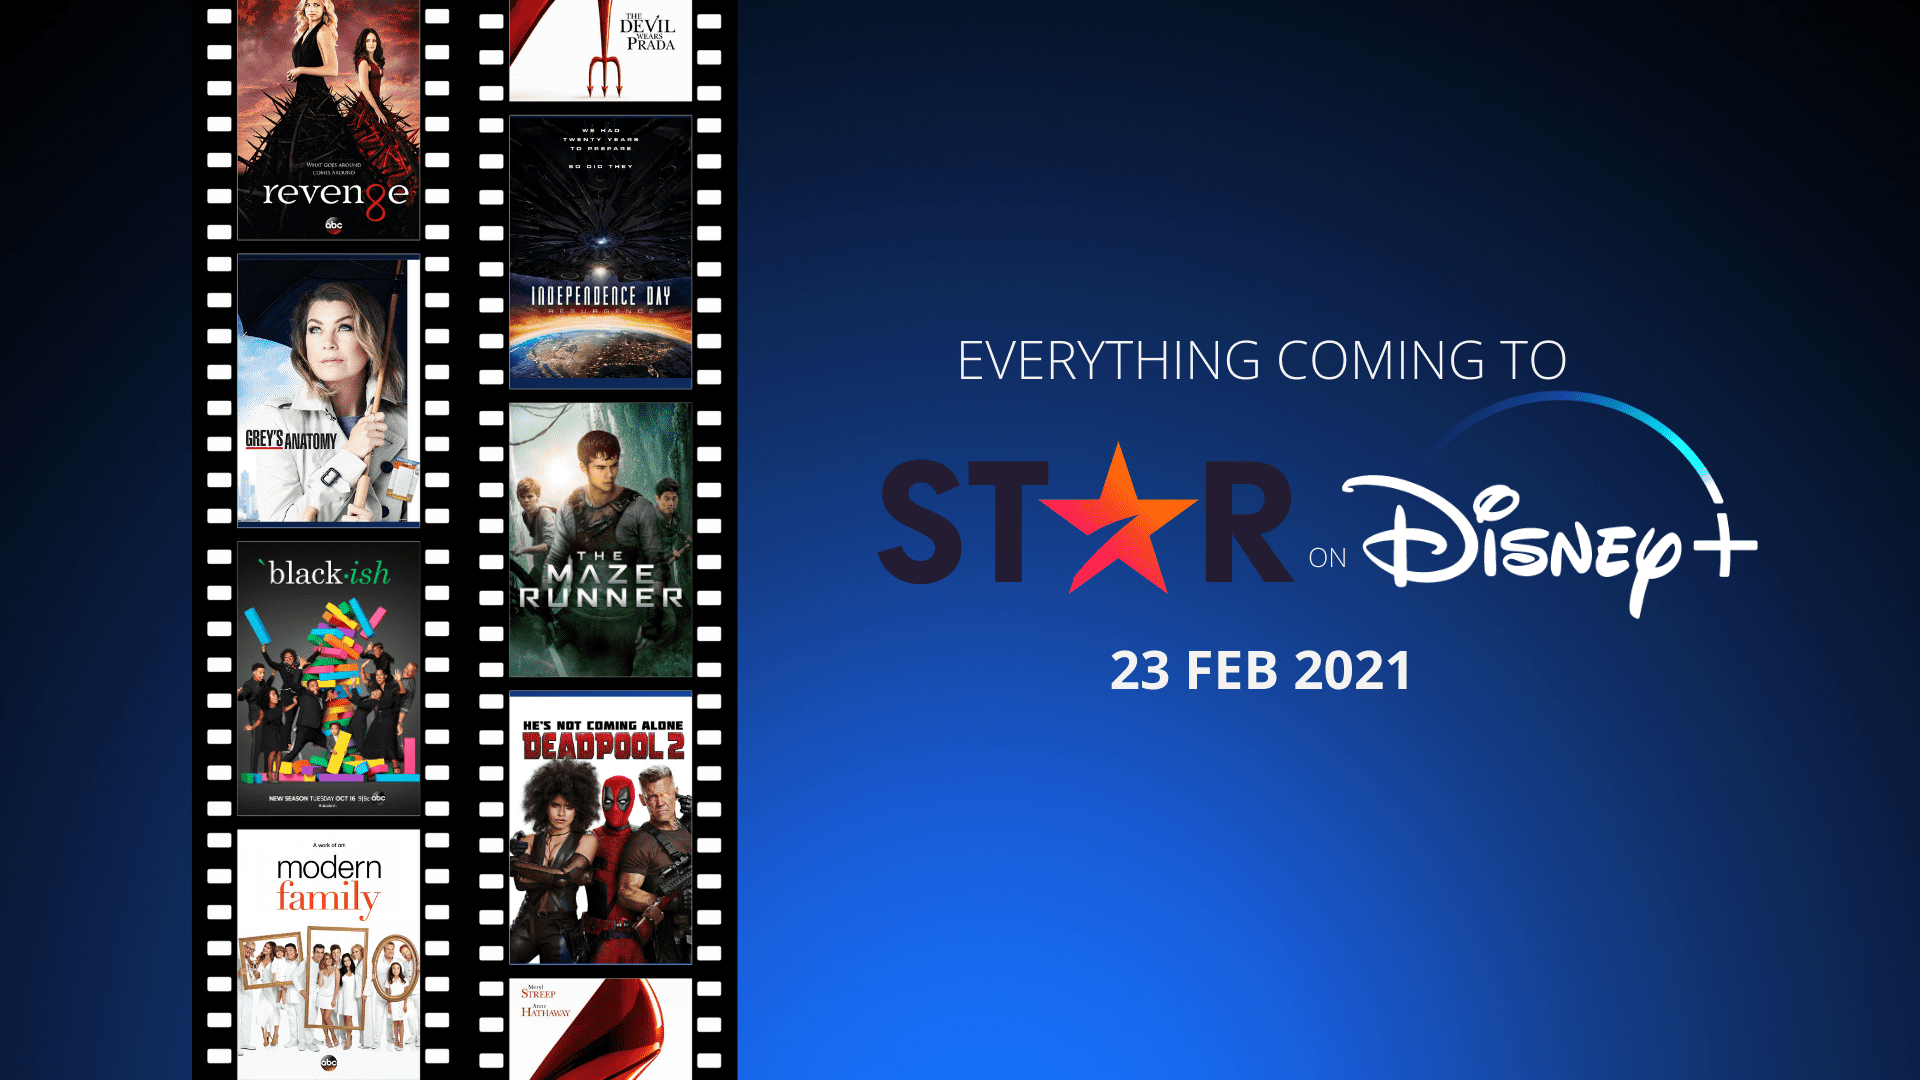 Full List of TV Shows and Films coming ot Star on Disney Plus February 2021